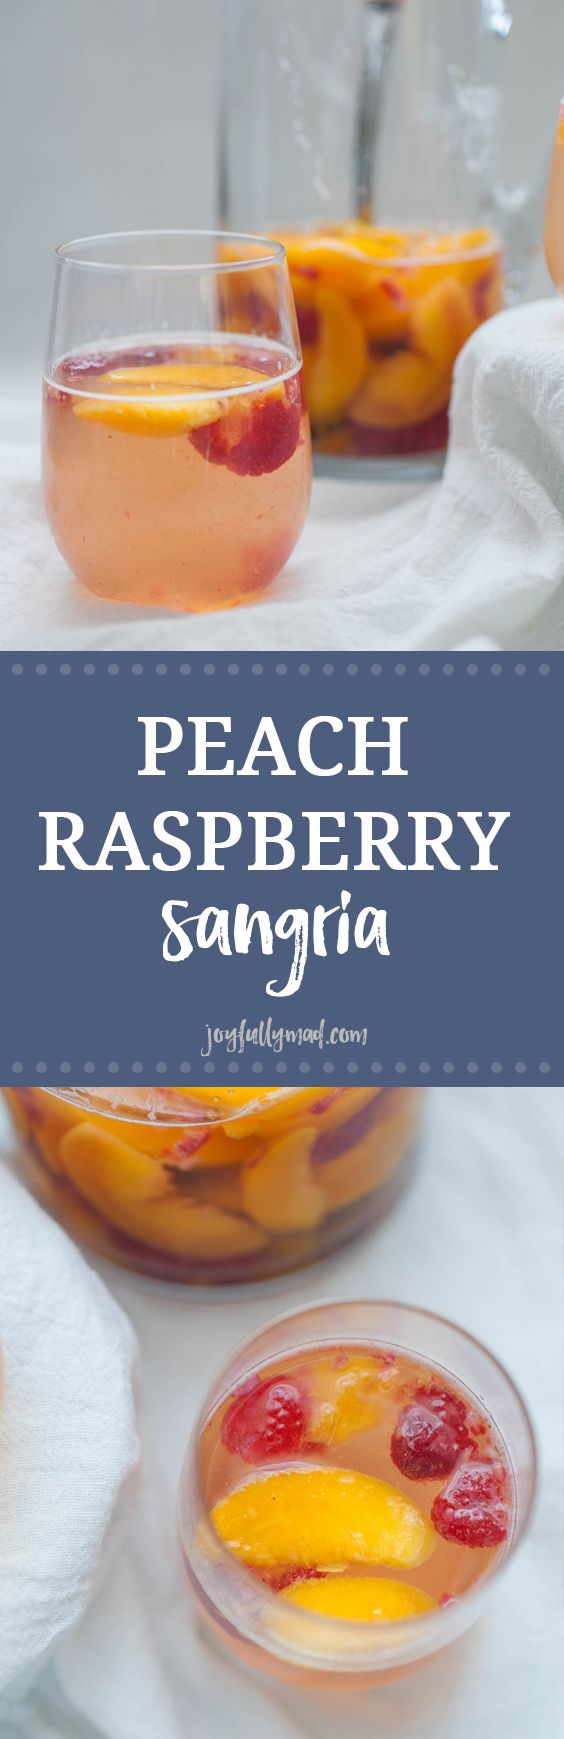 This Peach Raspberry Sangria is going to be the hit of all of your summer get togethers! A simple sangria recipe with peaches, raspberry, Moscato wine and a quick peach simple syrup makes this cocktail irresistible in the summer. (drunk party to get)